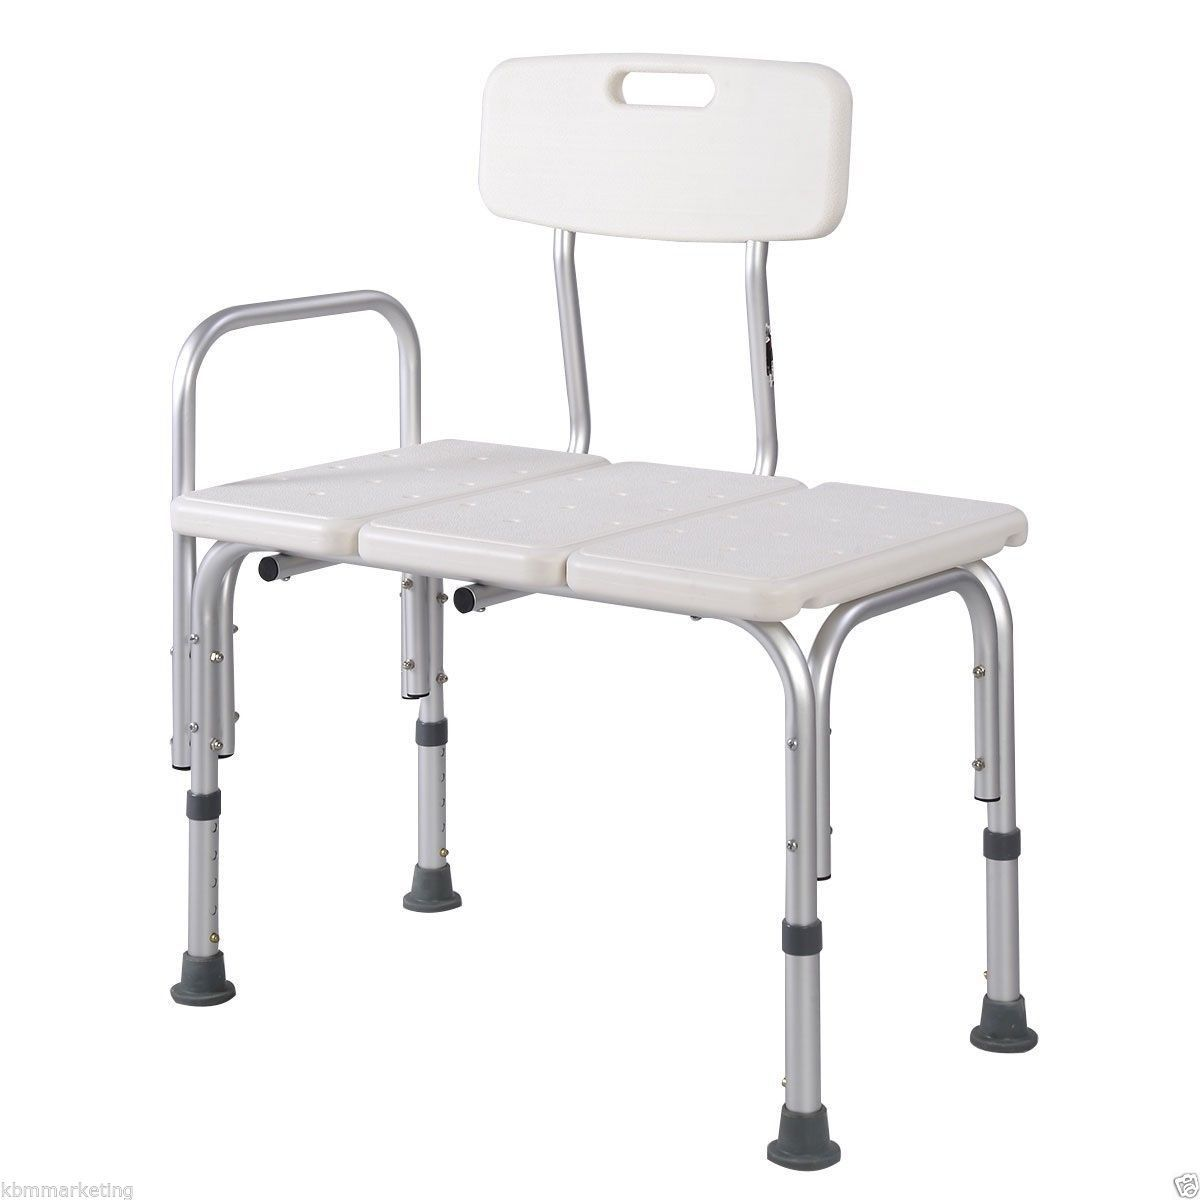 This Is Our Height Adjustable Shower Chair, Which Will Provide You ...